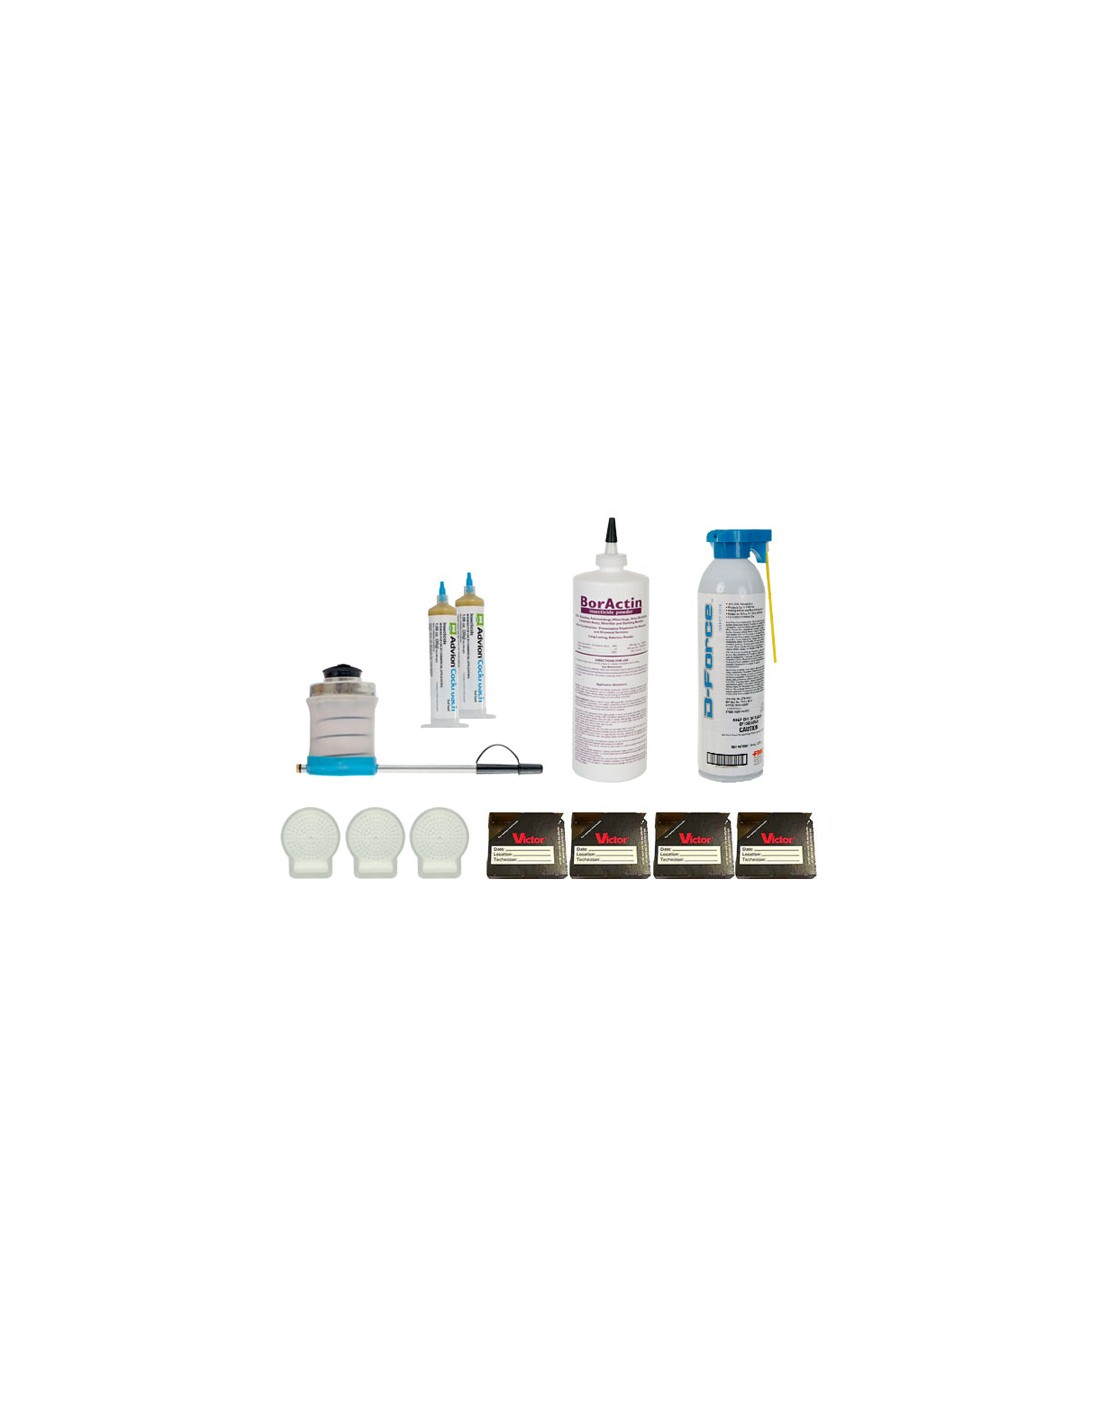 German Cockroach Control Kit Questions & Answers